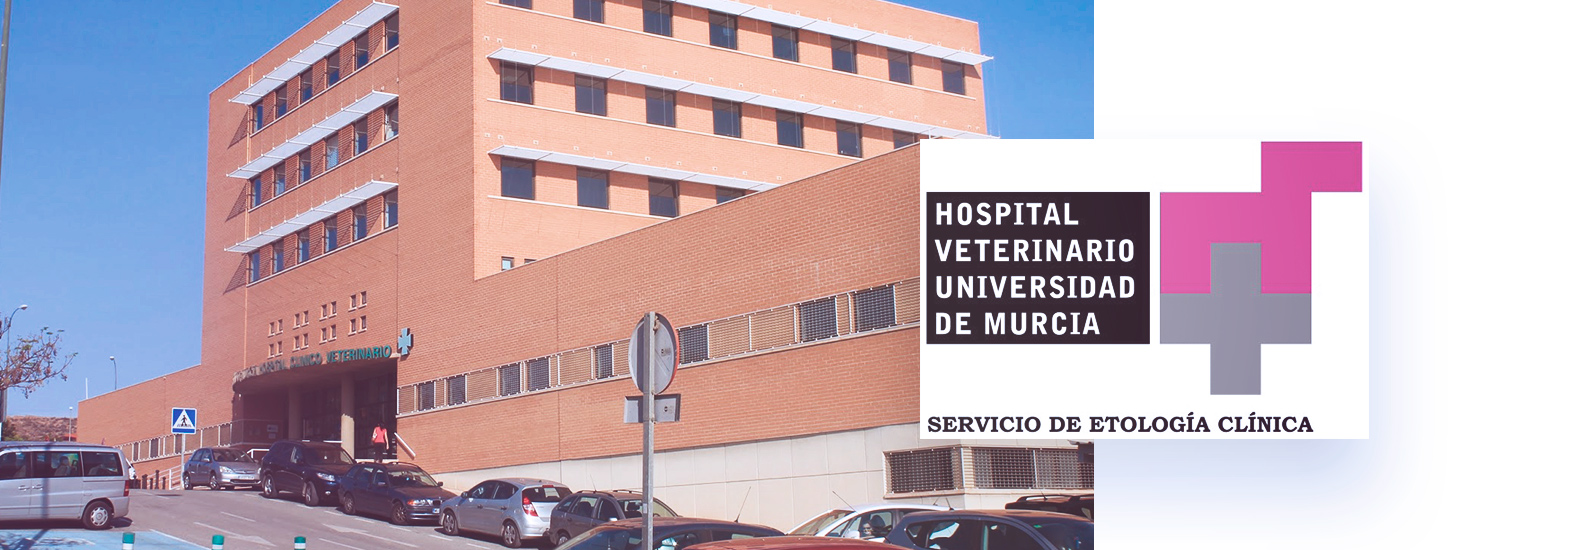 Collaboration with the Veterinary Hospital of the University of Murcia